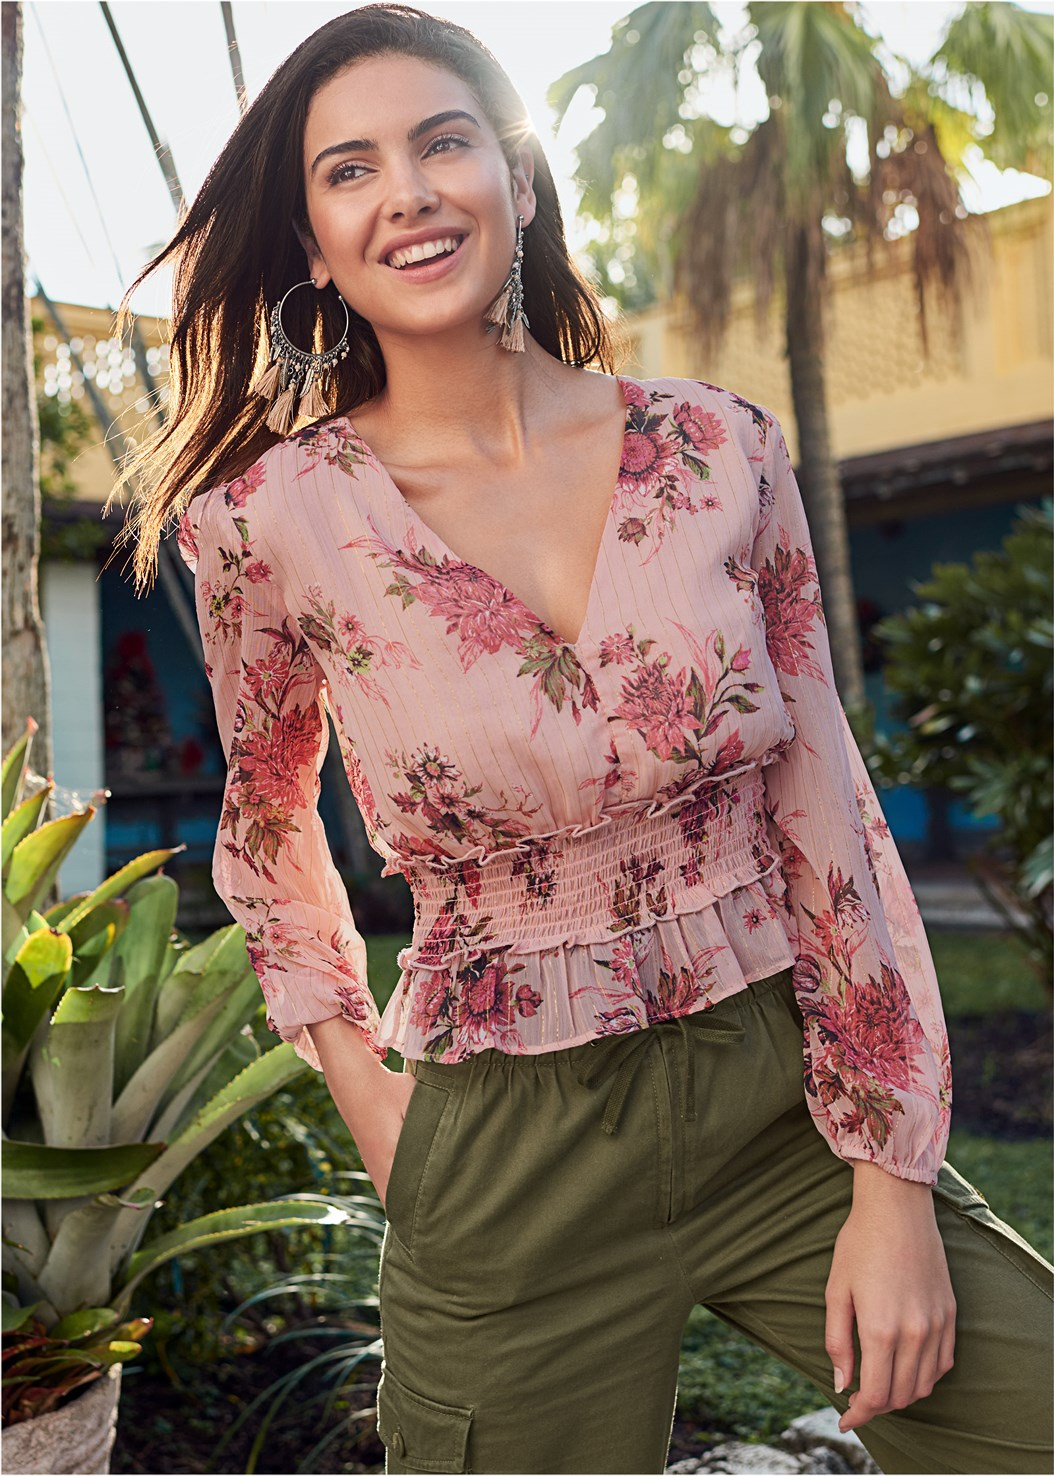 Smocked Floral Print Blouse,High Waisted Cargo Pants,Mid Rise Color Skinny Jeans,Push Up Bra Buy 2 For $40,Tassel Detail Hoop Earrings,Oversized Tassel Earrings